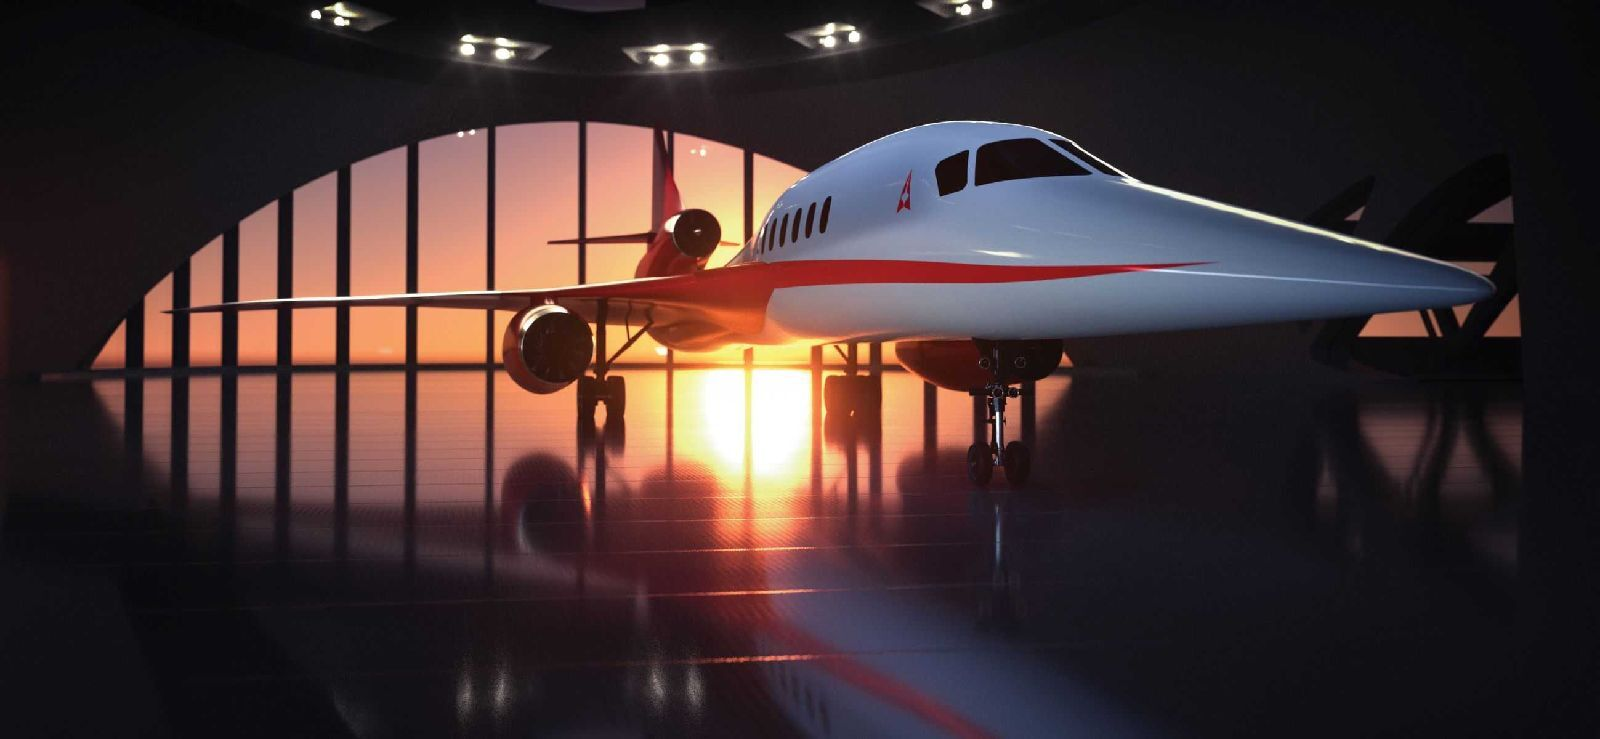 A company rendering of the Aerion AS2 business jet.